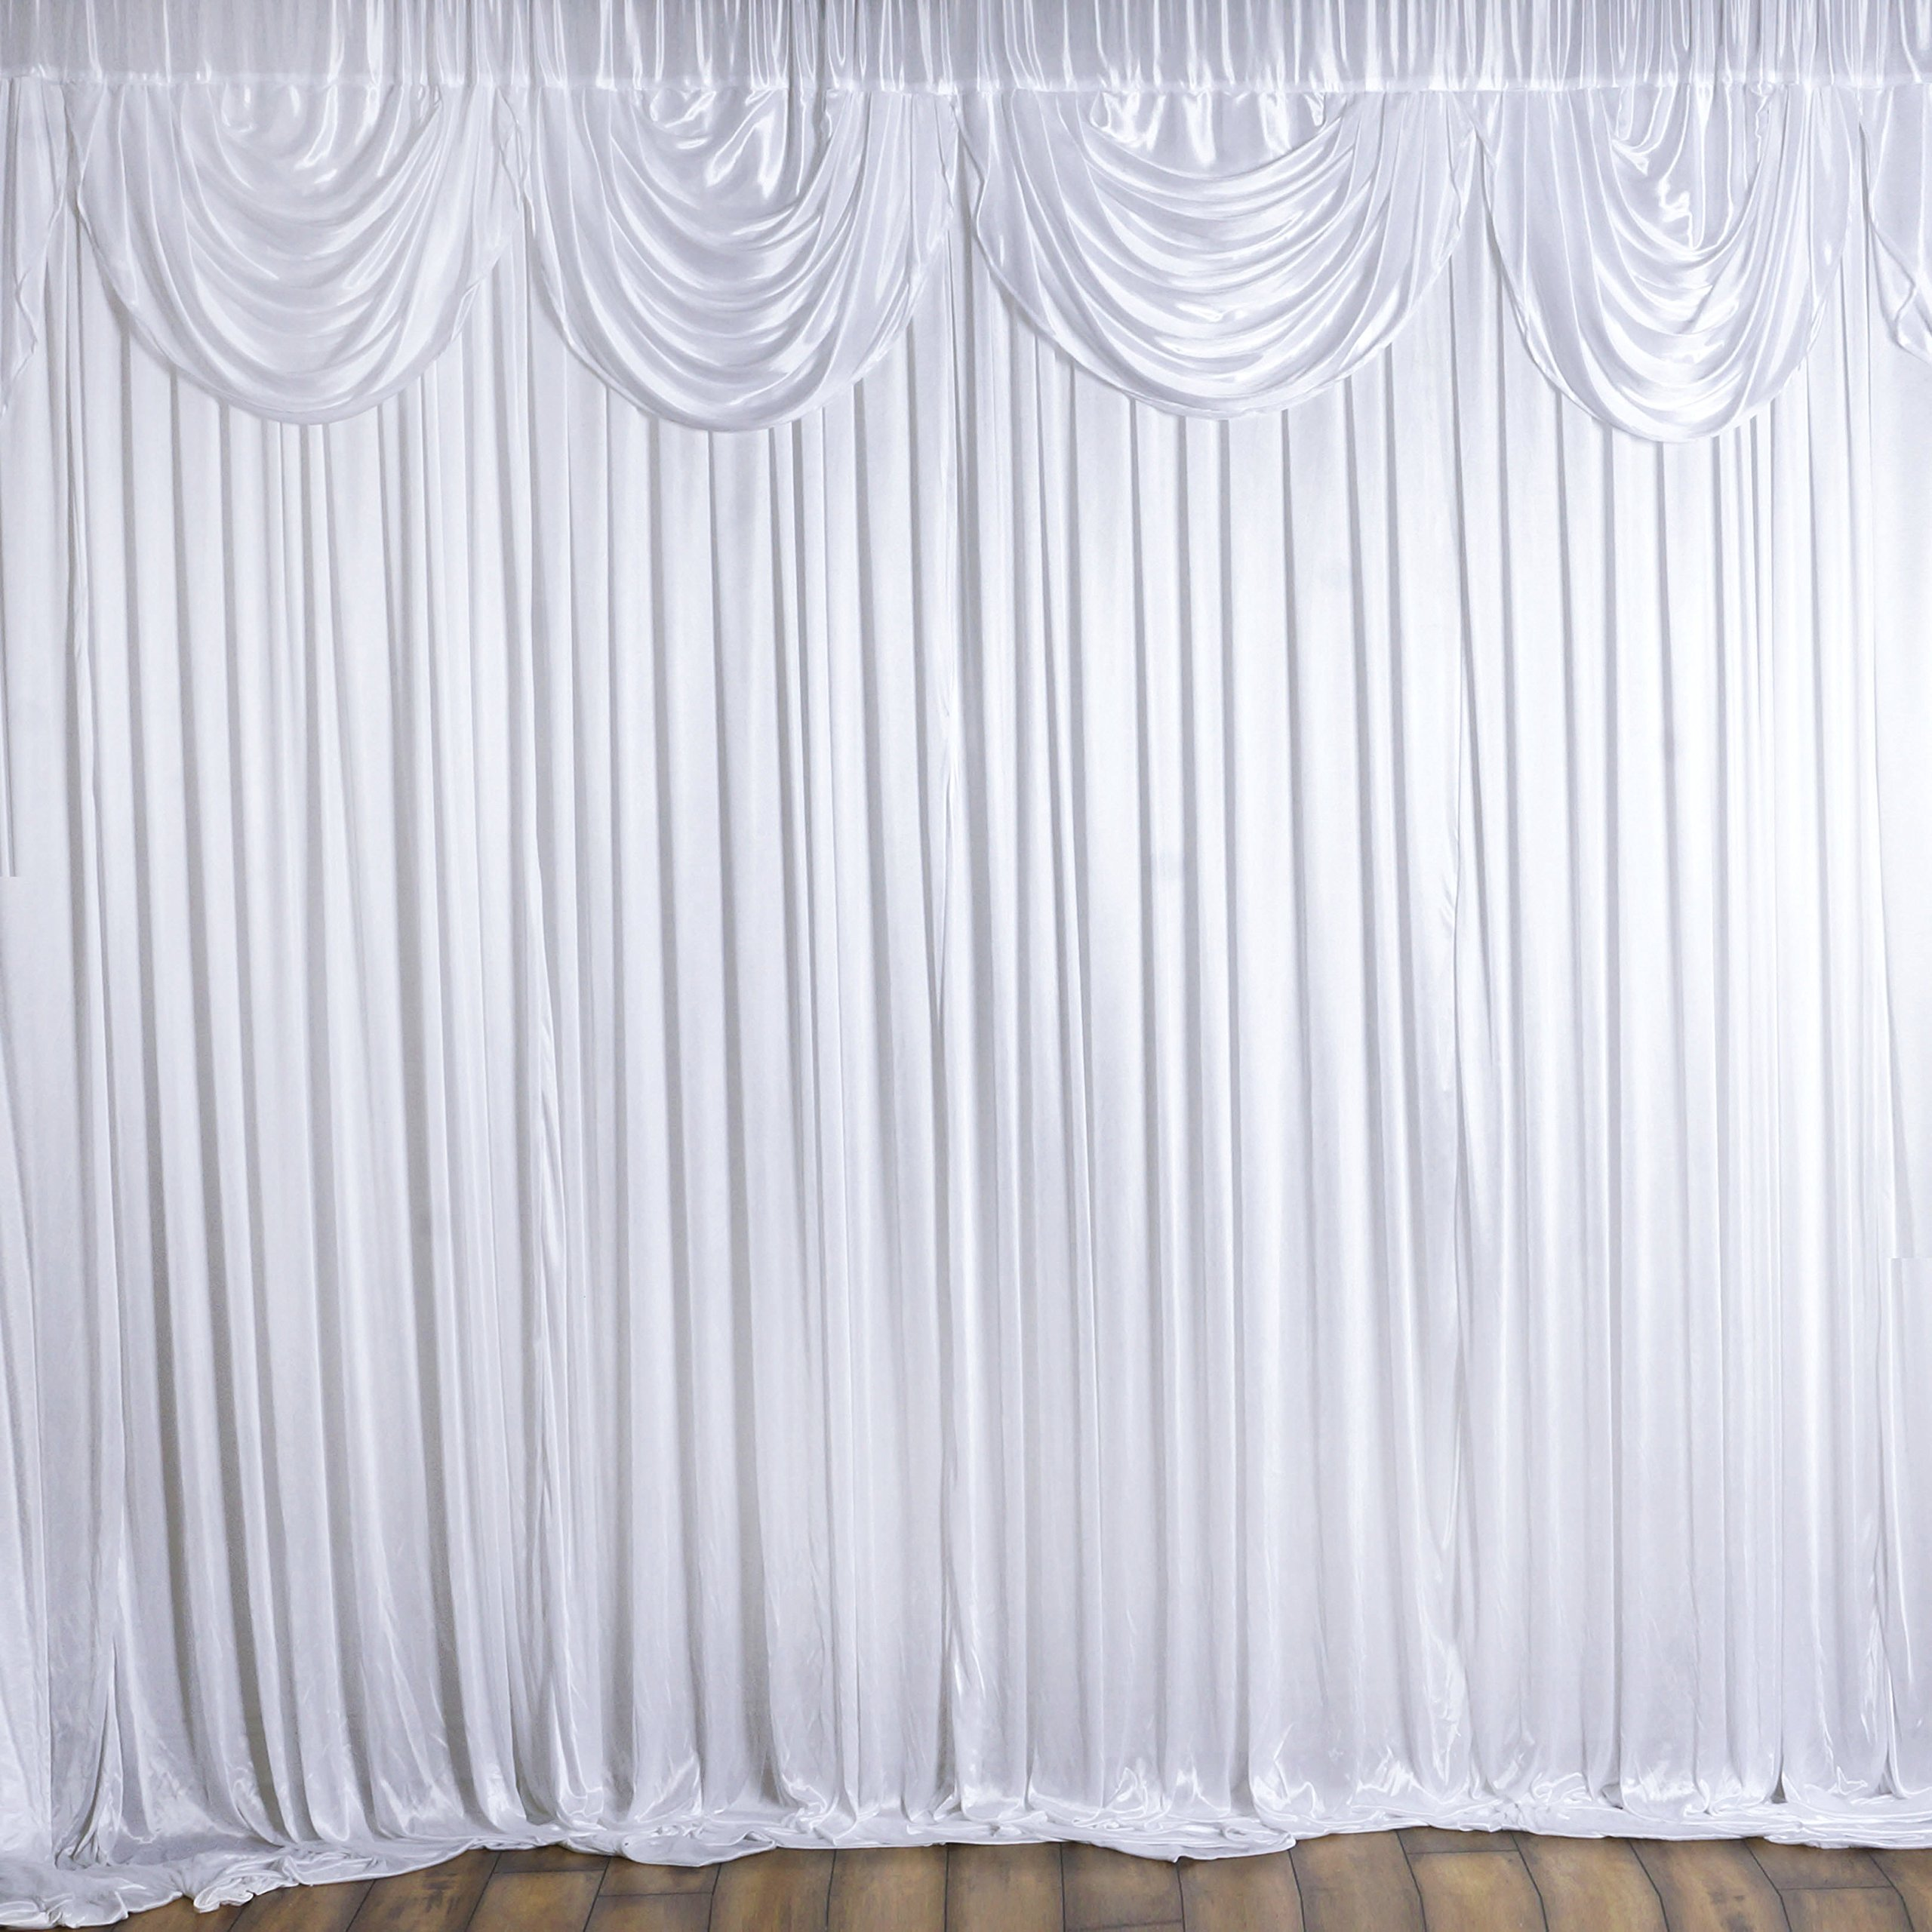 Tableclothsfactory 20ft x 10ft Classic Double Drape Party Wedding Backdrop,Photography Background - White by Tableclothsfactory